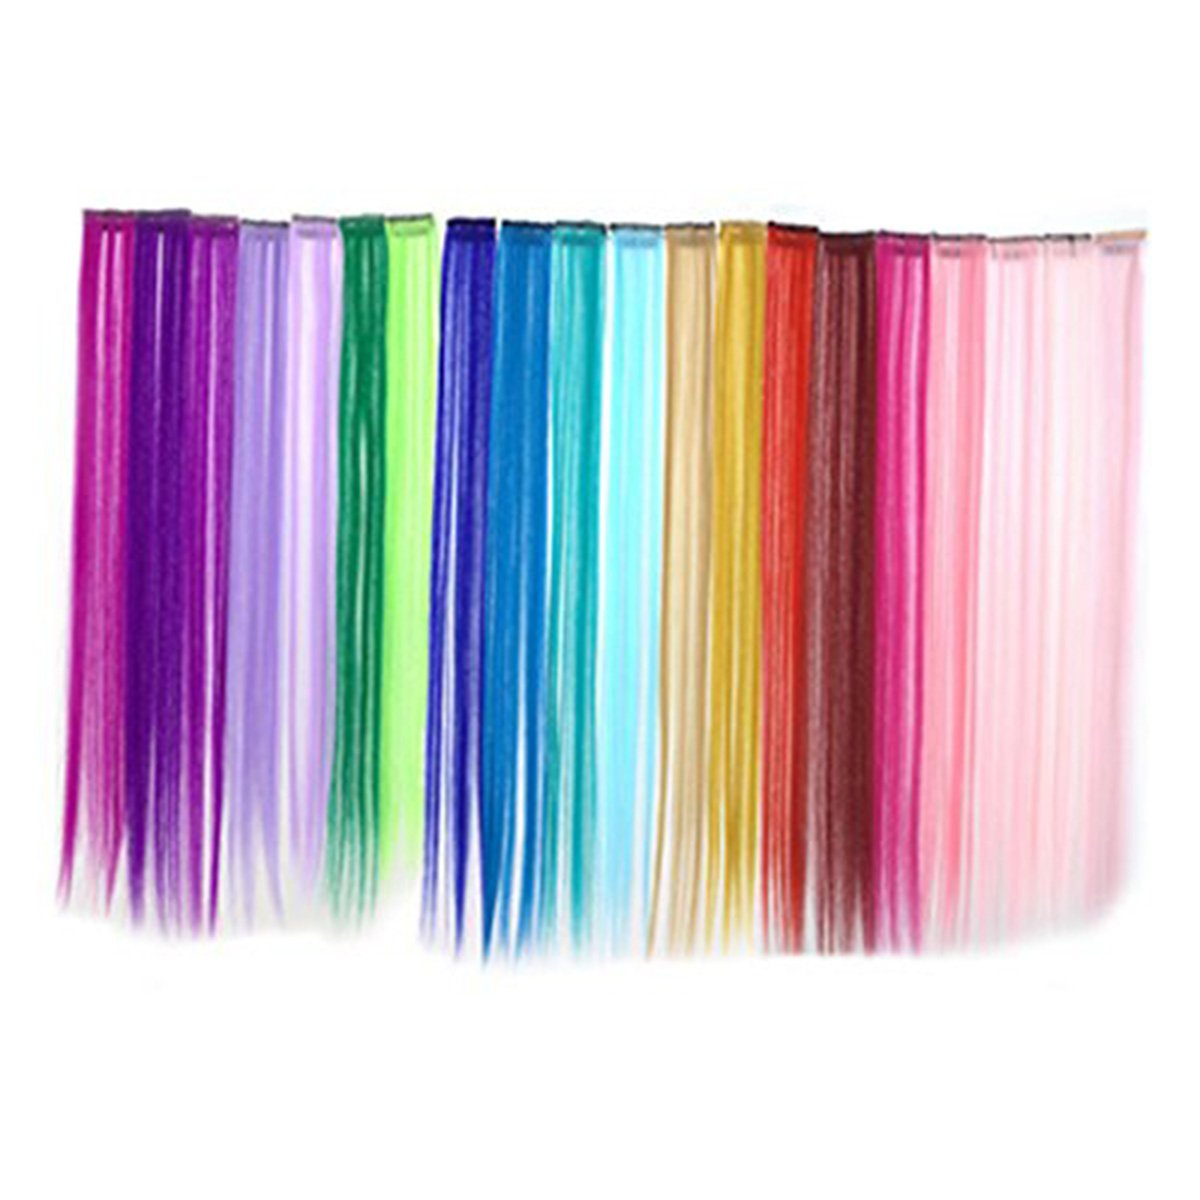 OKOK Bundle 24 Pieces Of 20 inches Multi-Colors Party Highlights colorful Clip In Synthetic Hair Extensions,Straight Long Hairpiece by OKOK